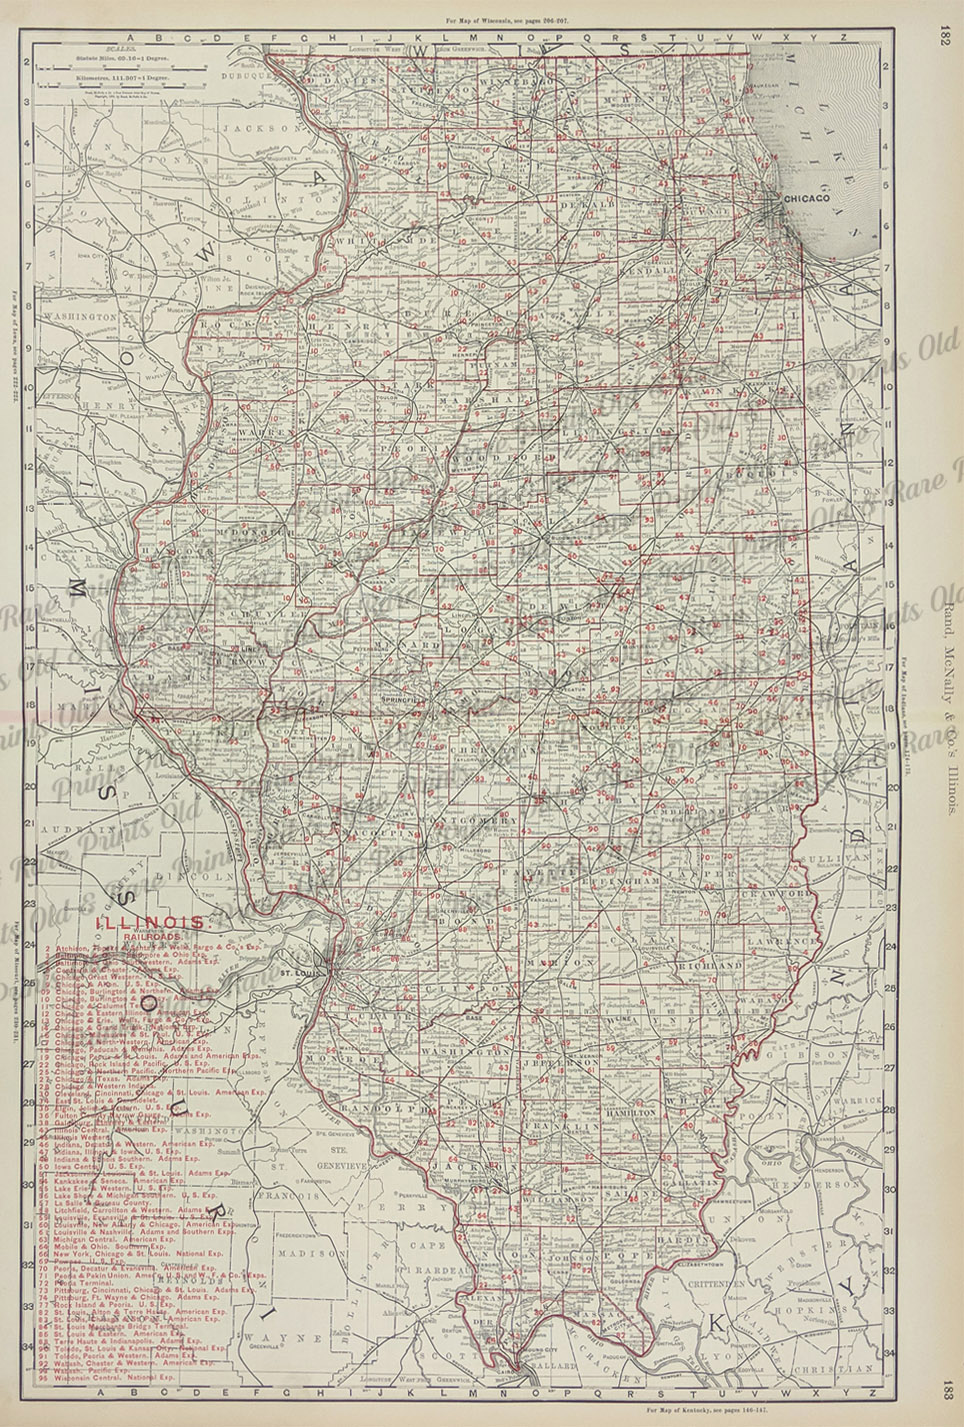 Prints old rare illinois antique maps prints 1898 color outlined illinois railroads map published by rand mcnally company detailed railroads key is on bottom left side of map 27 x 20 12 in gumiabroncs Image collections